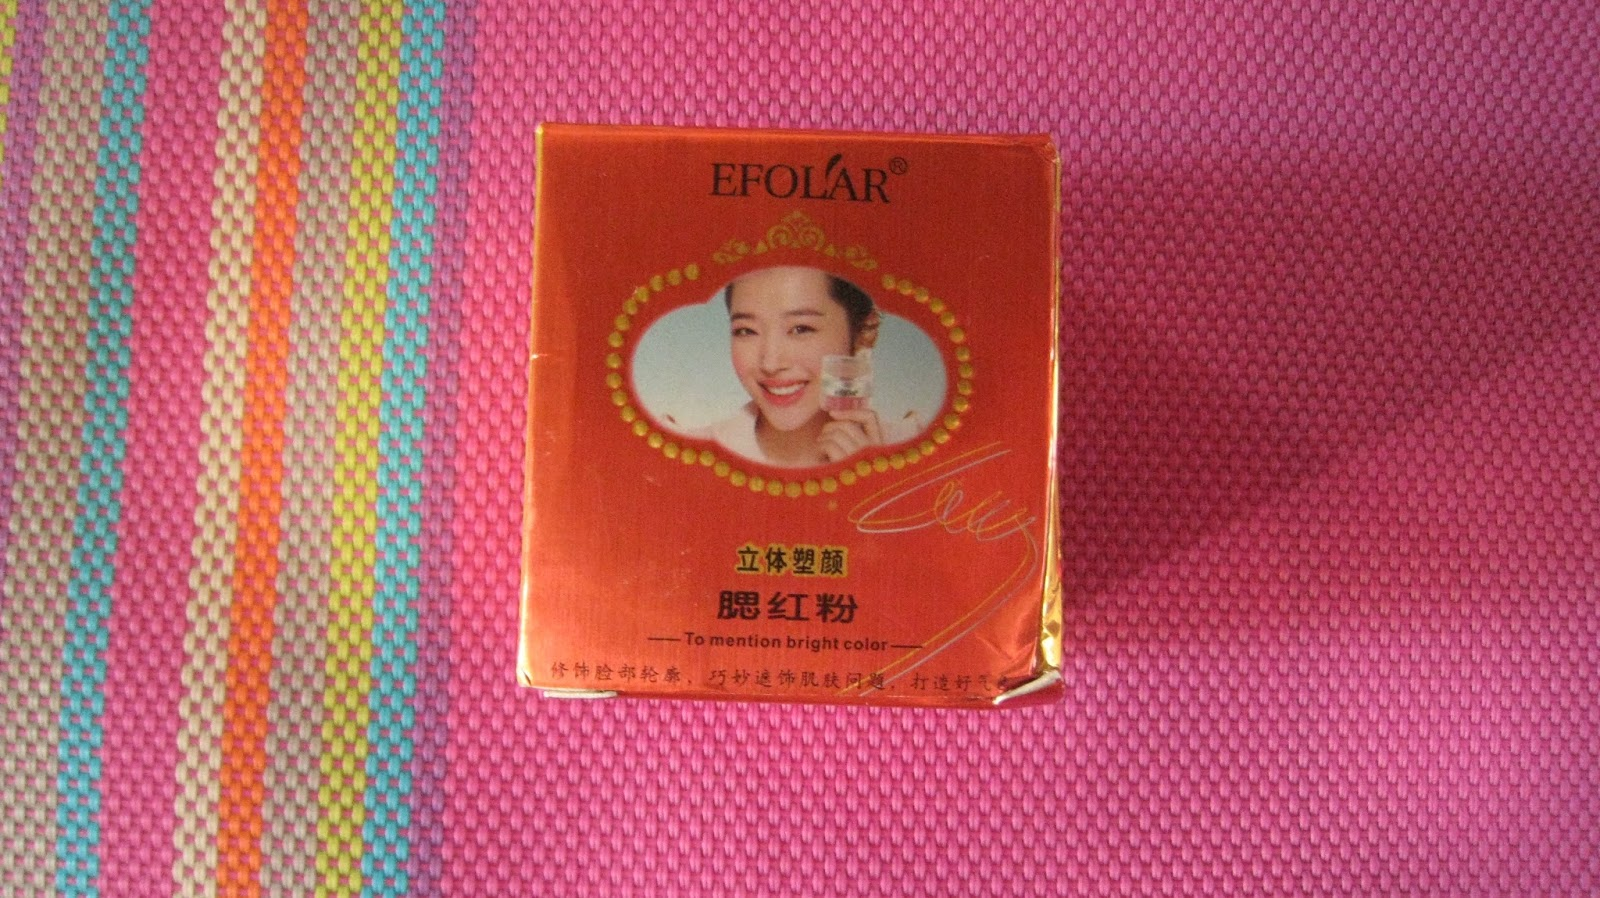 Efolar Bright Blush Bb Cream Makeup Blusher Mineral Powder Puff Peach Pink 02 Bioaqua On Cushion Flawless Cheek Review By Elgr Nail Art Health And Beauty Pages Eleftheria